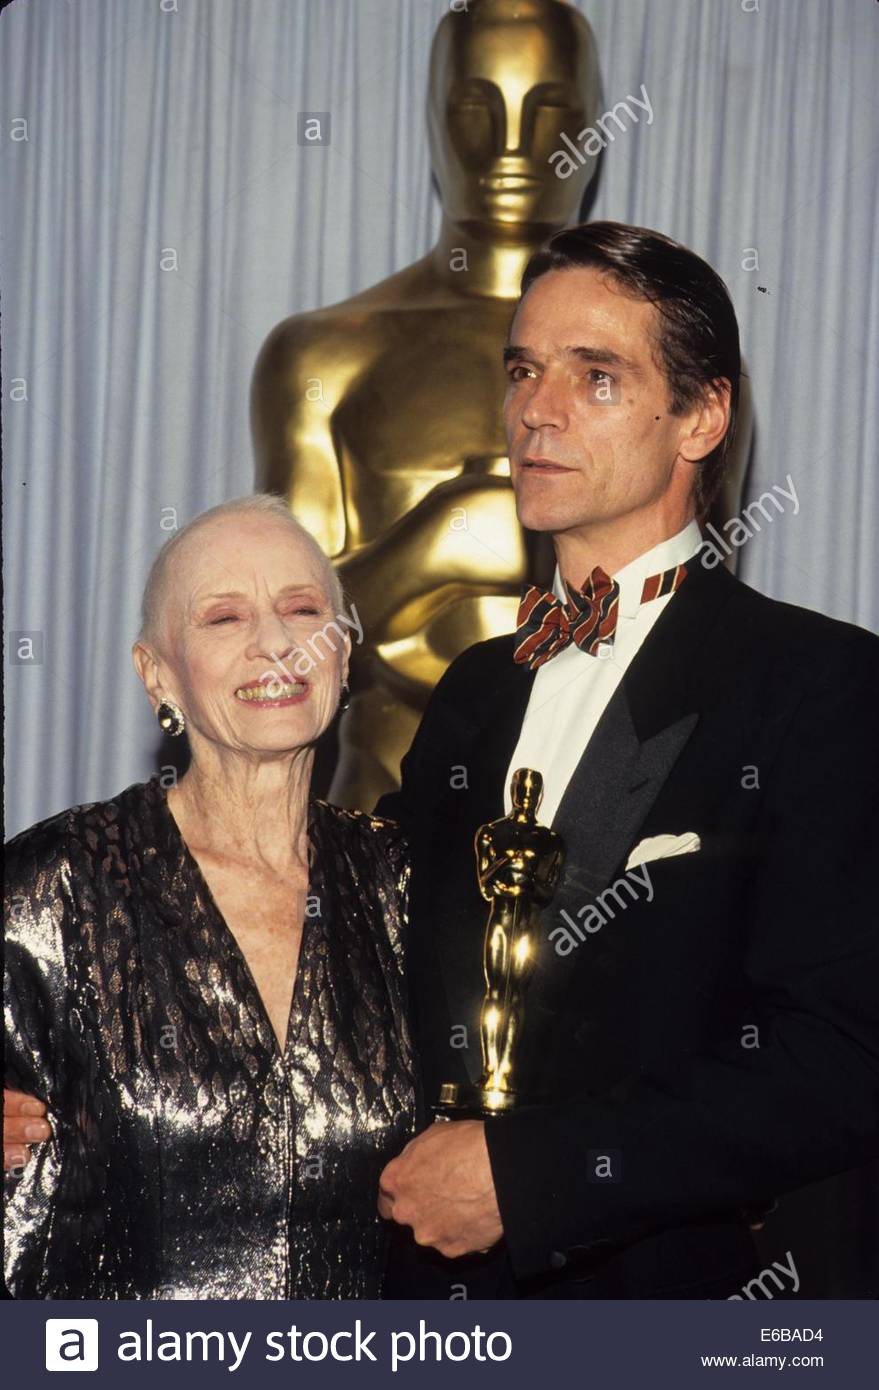 JEREMY IRONS With Jessica Tammy At Oscar Academy Awards 1991l1289Credit Image